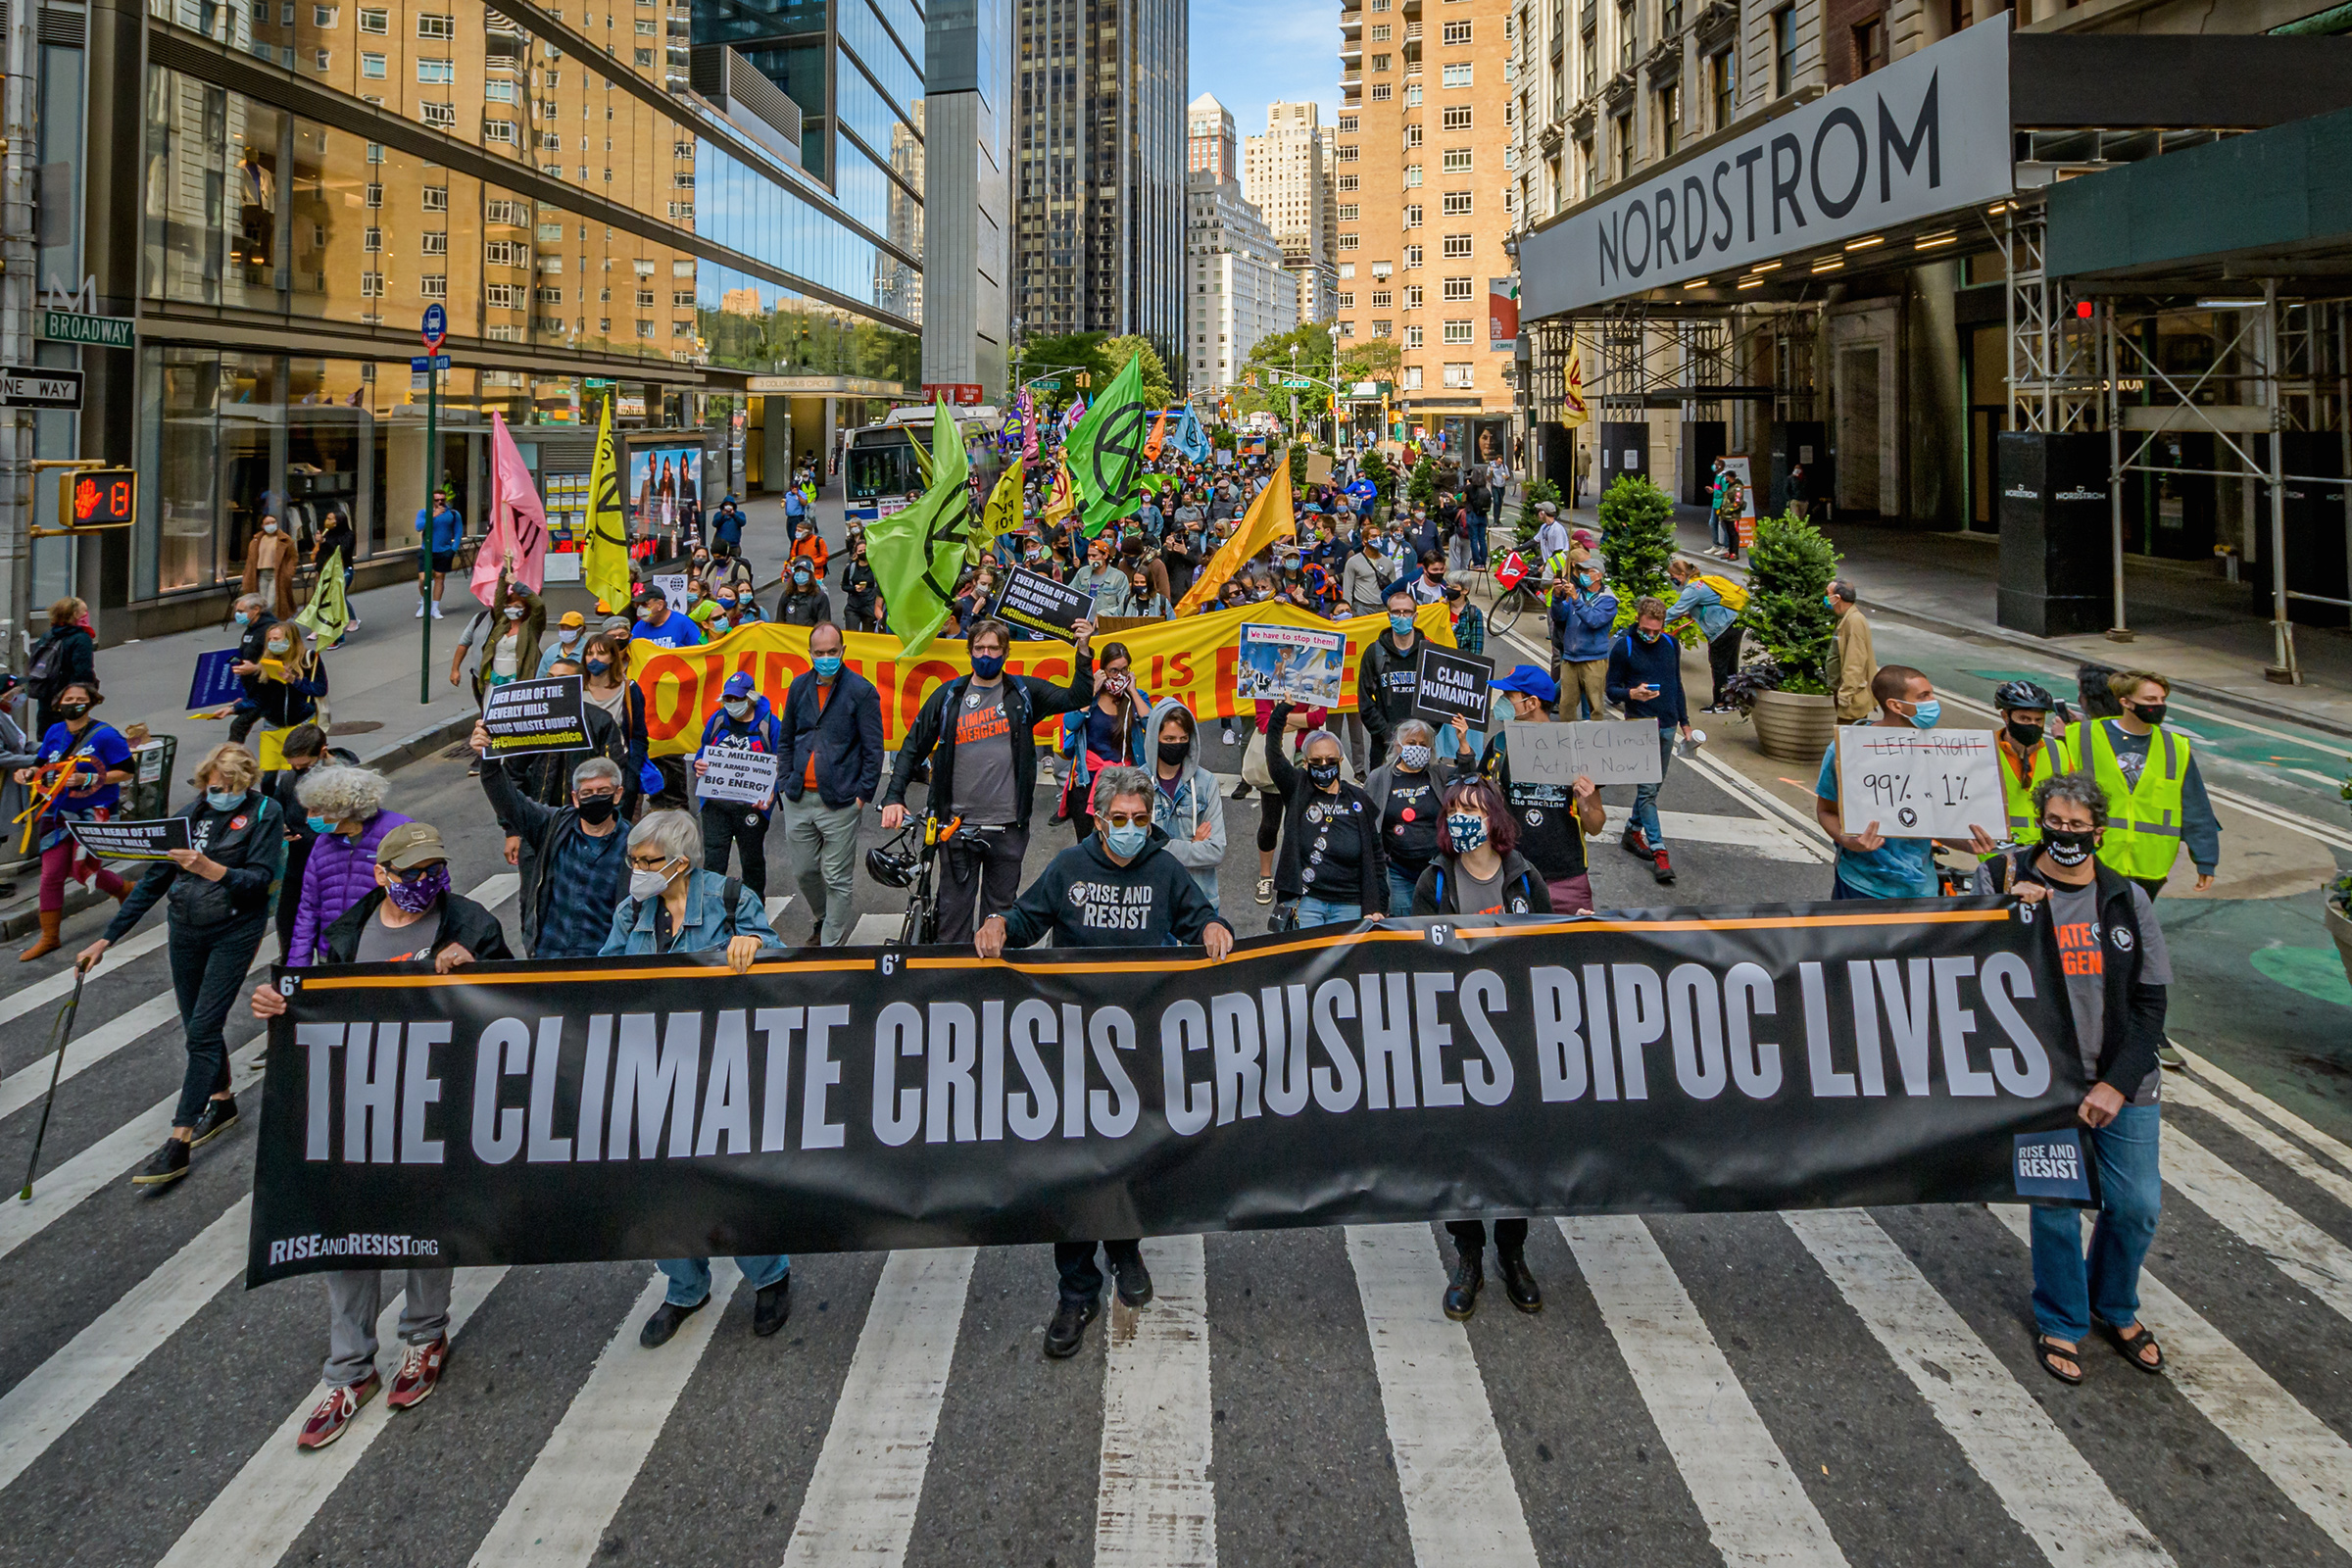 A coalition of climate, Indigenous and racial justice groups gathered at Columbus Circle to kick off Climate Week with the Climate Justice Through Racial Justice march on Sept. 20, 2020.